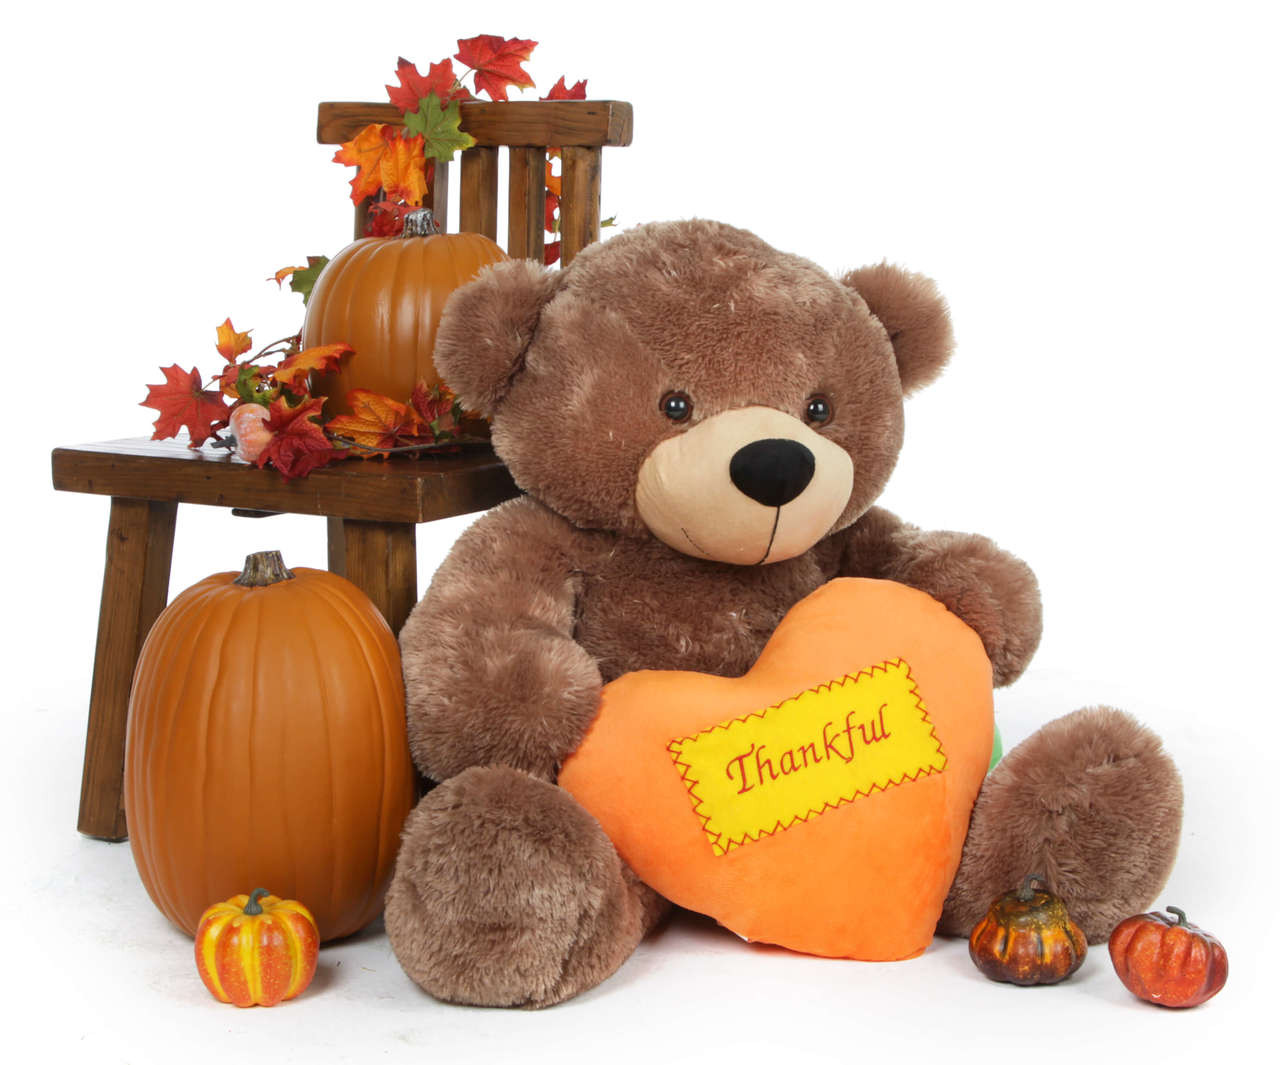 38 inch Sunny Cuddles sends a great Thanksgiving message with his plush orange Thankful heart, perfect for gifts.